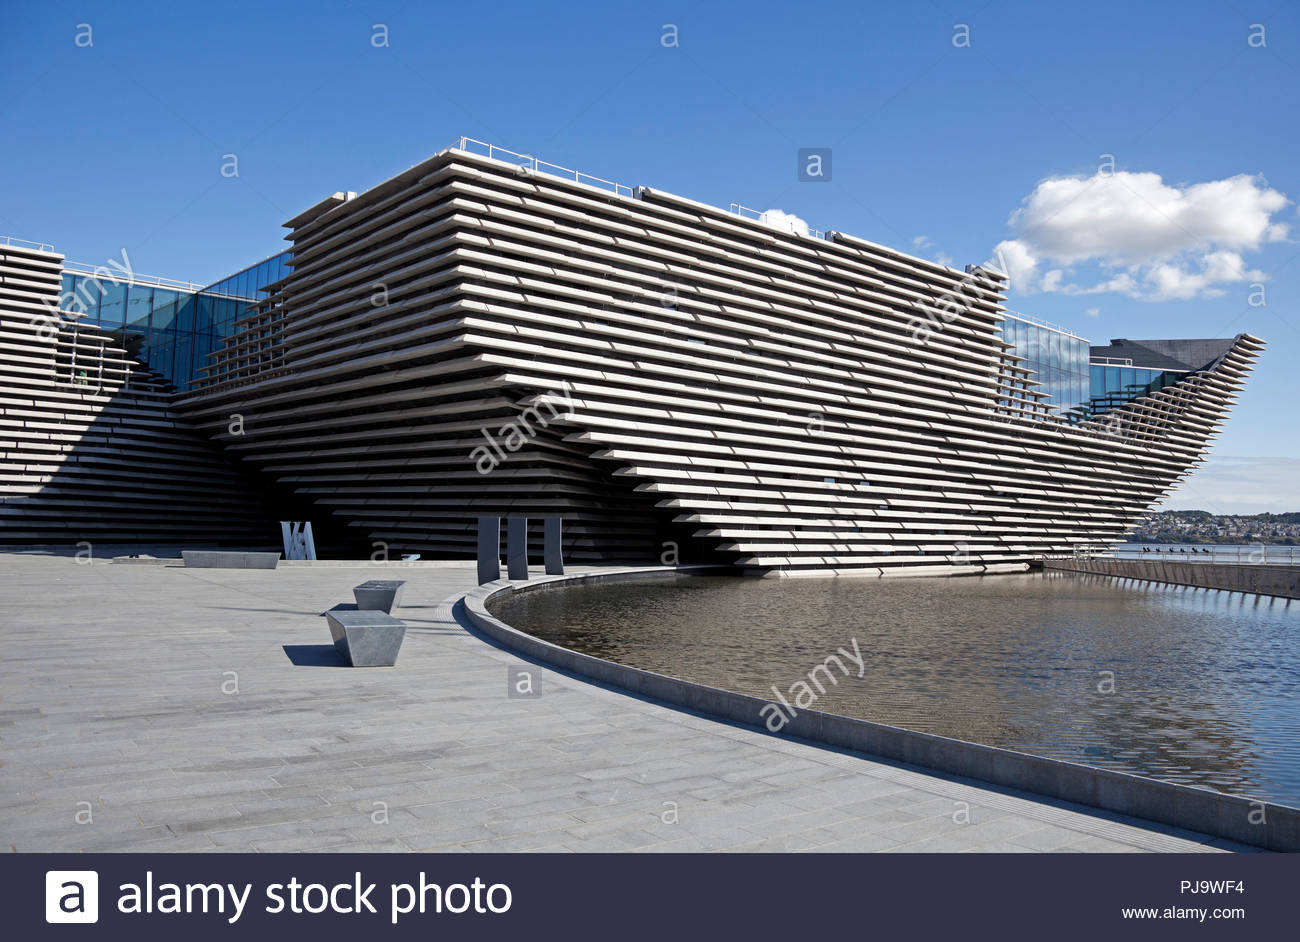 V & A, V&A, Victoria and Albert Museum, Dundee, Scotland, UK, Europe - Stock Image